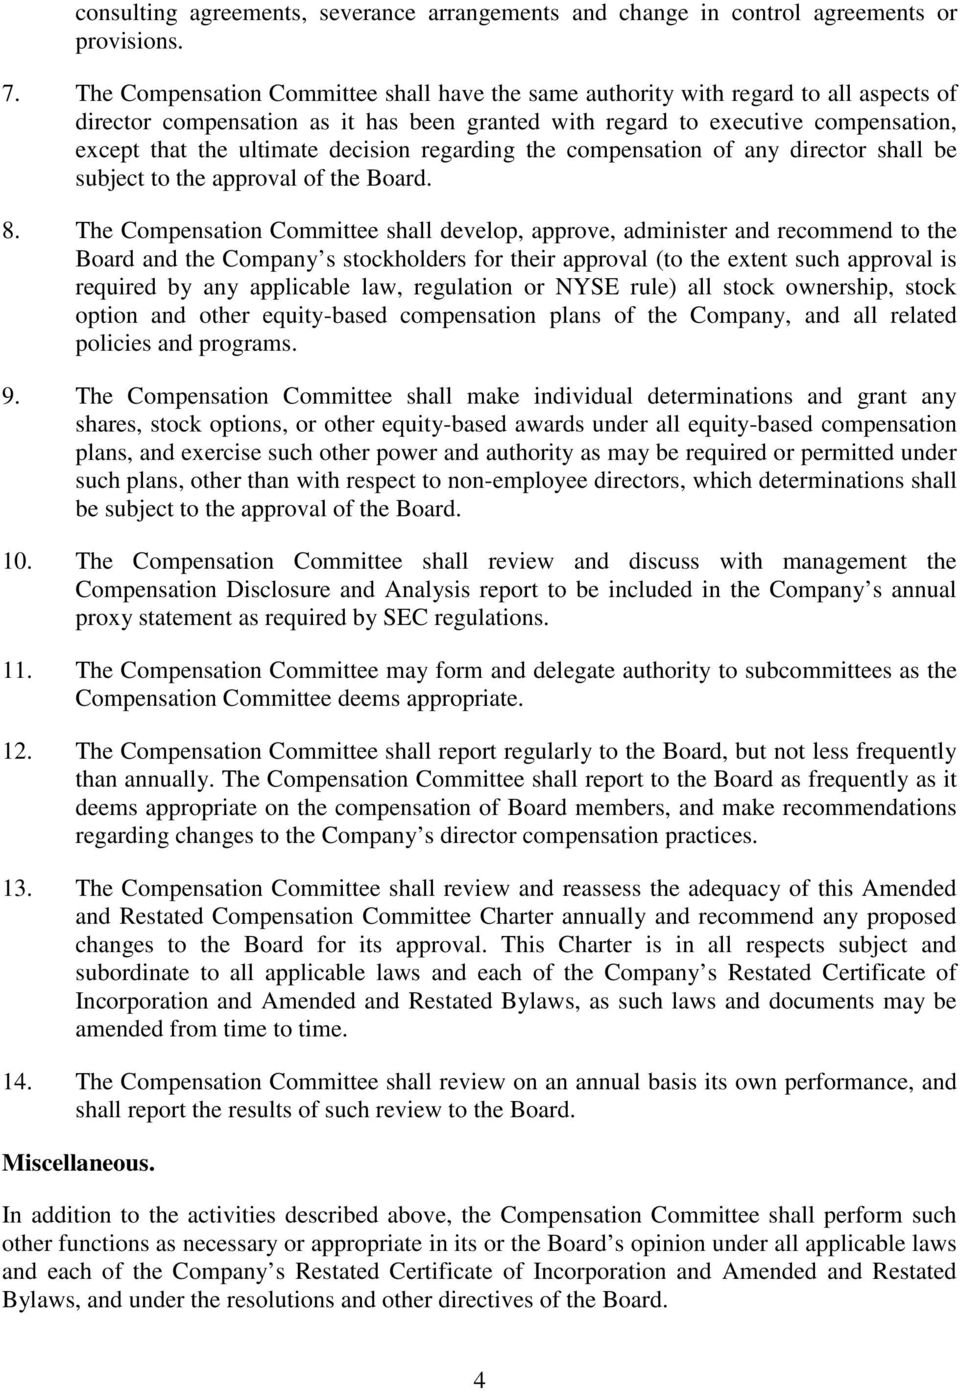 decision regarding the compensation of any director shall be subject to the approval of the Board. 8.